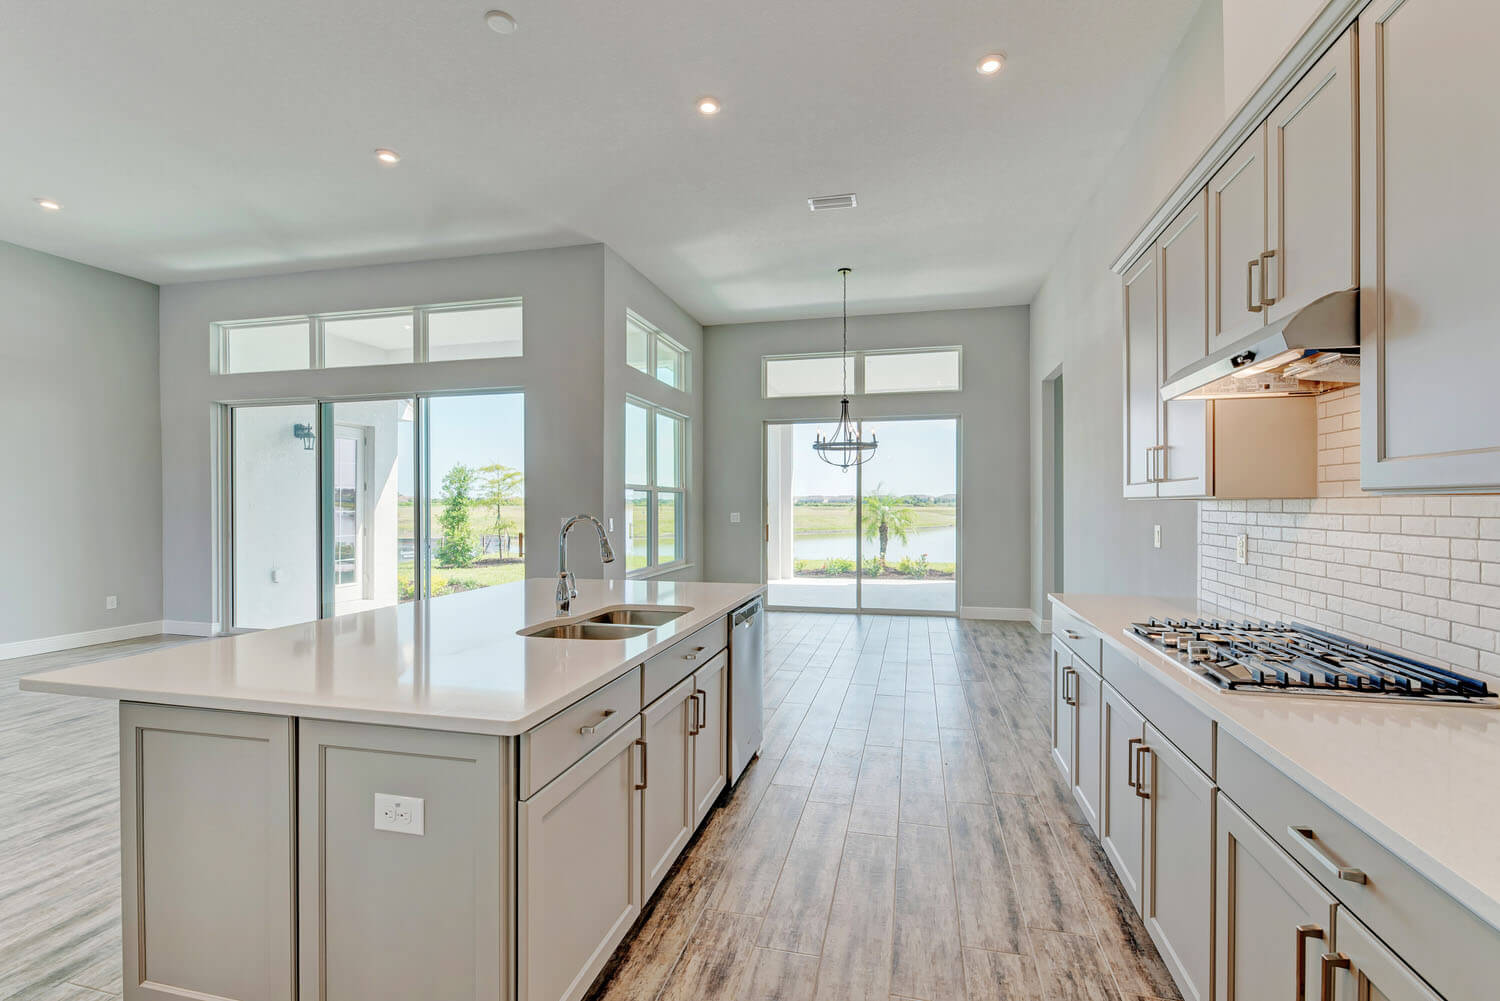 New Tampa Single Family Home Quick Possession Martin in Worthington, located at 4620 Antrim Drive  Built By Cardel Homes Tampa